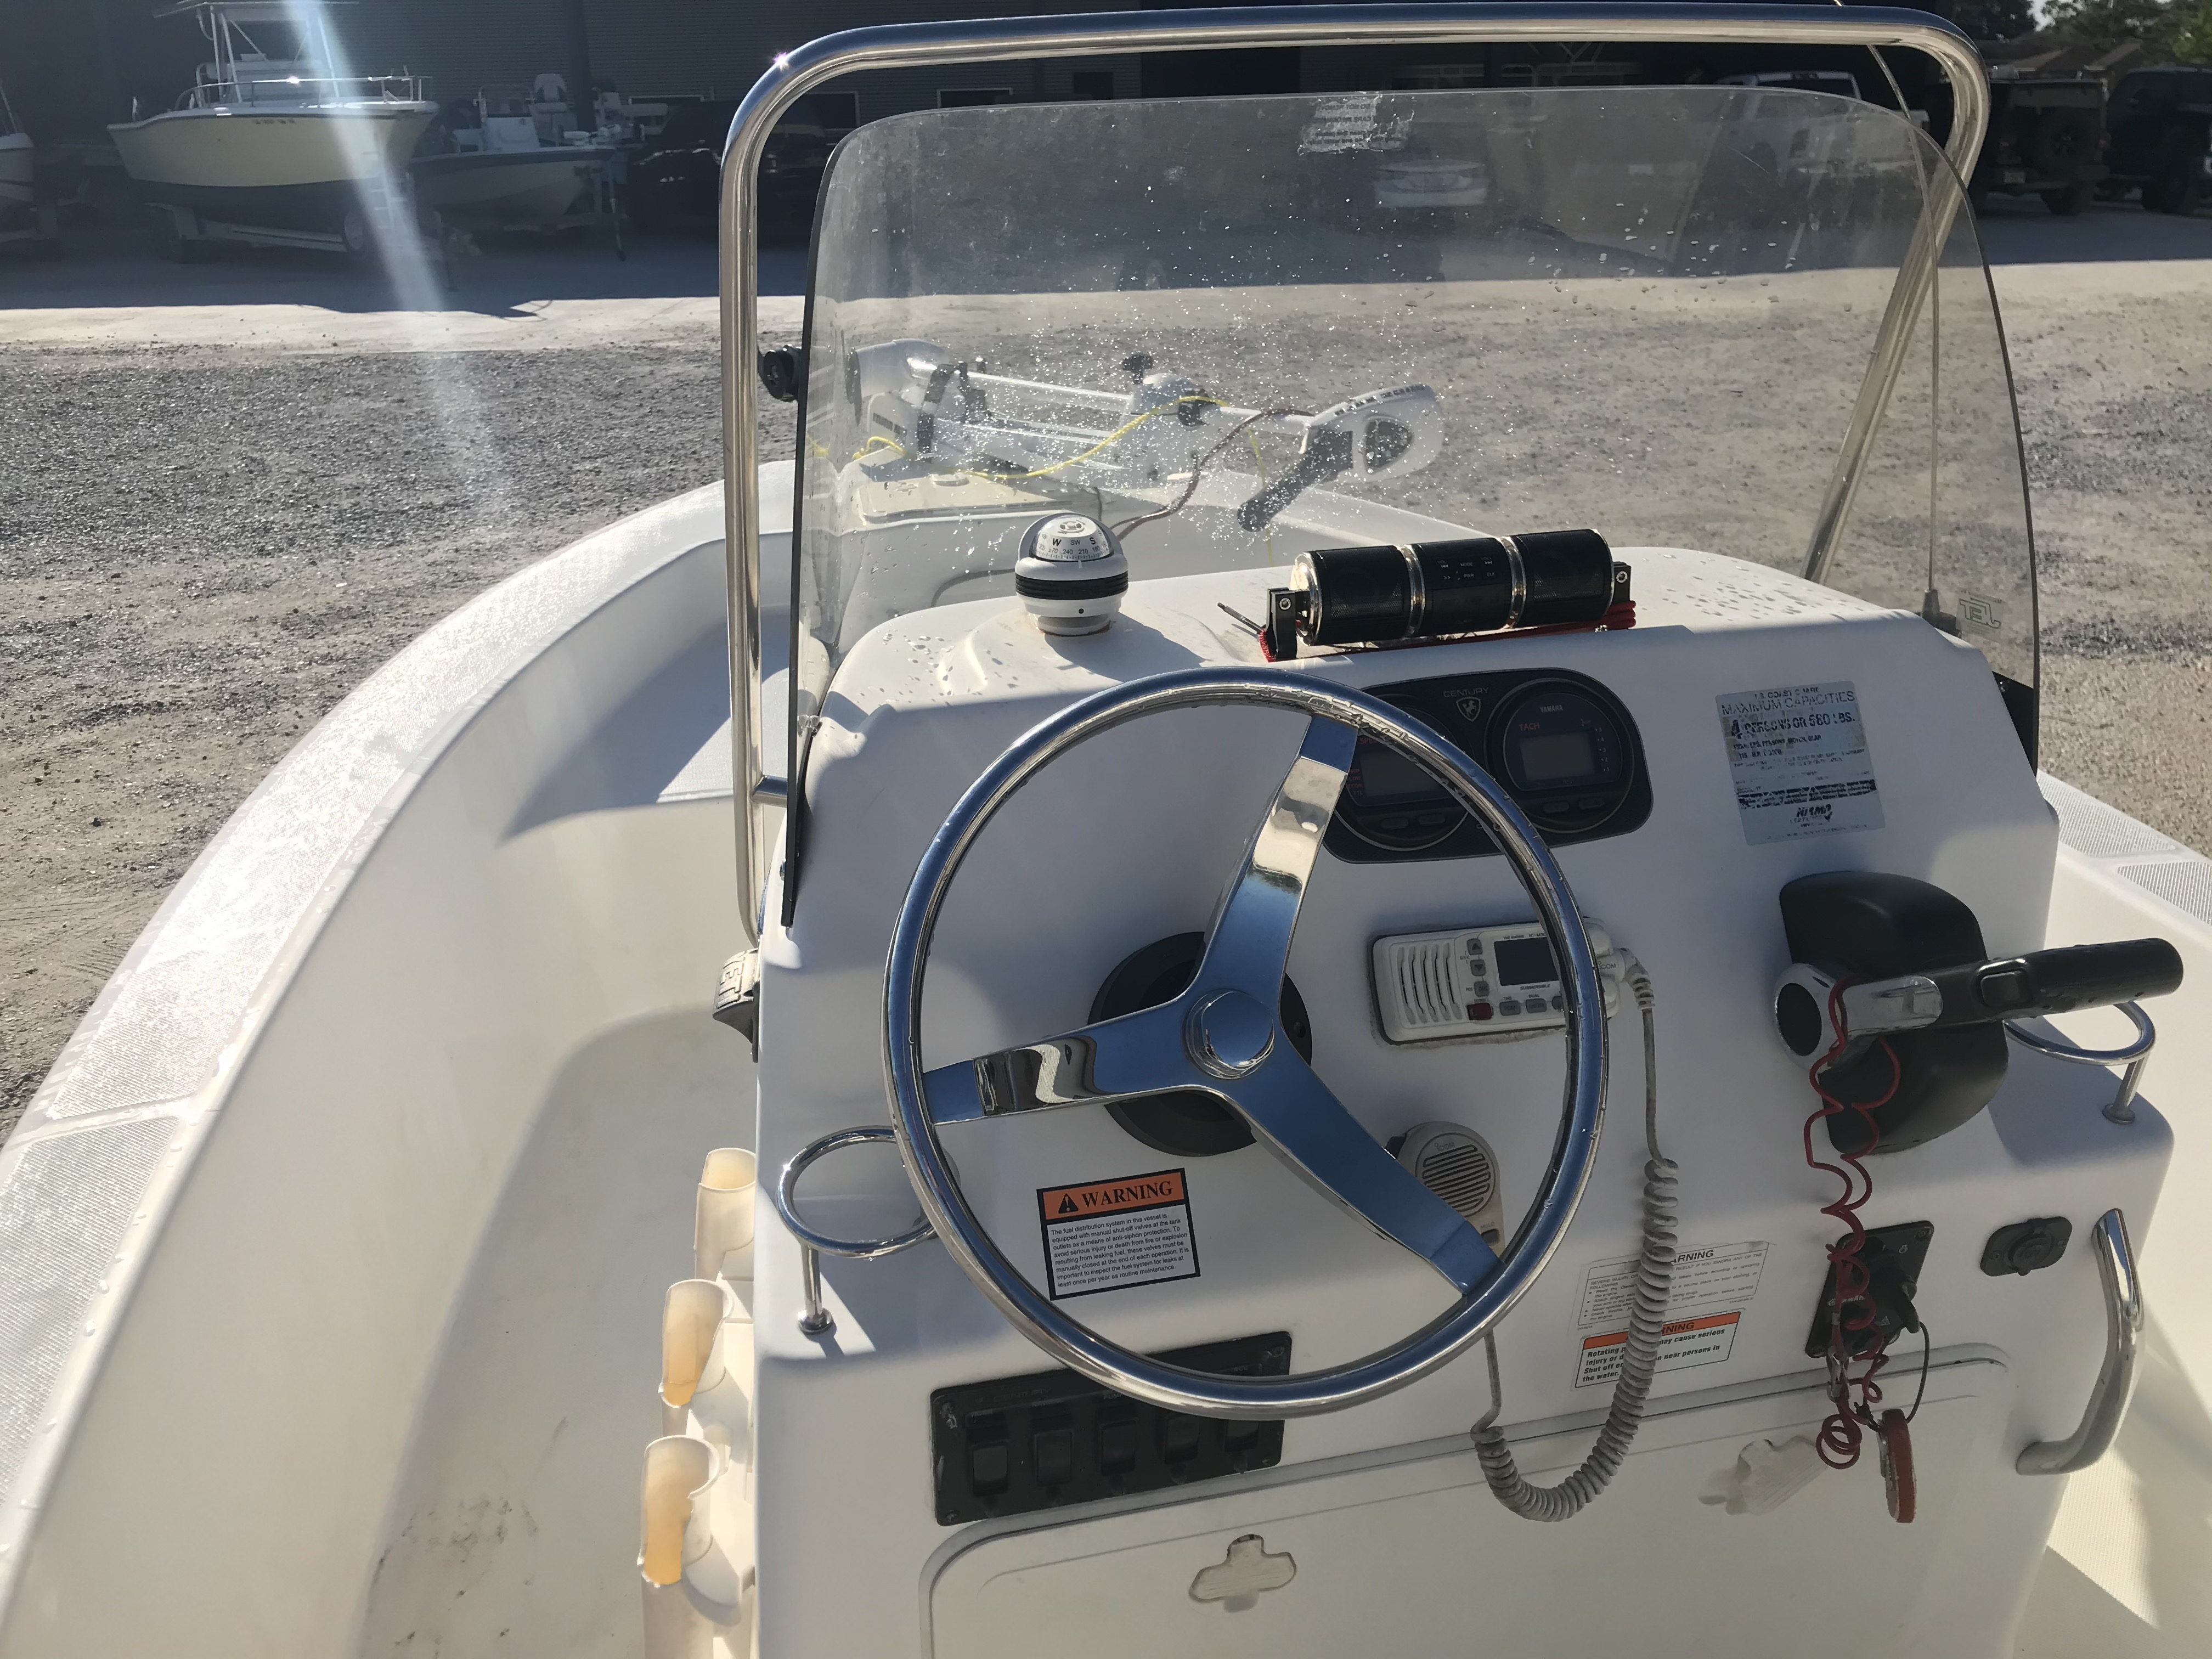 2007 Century boat for sale, model of the boat is 1701 SV & Image # 8 of 8